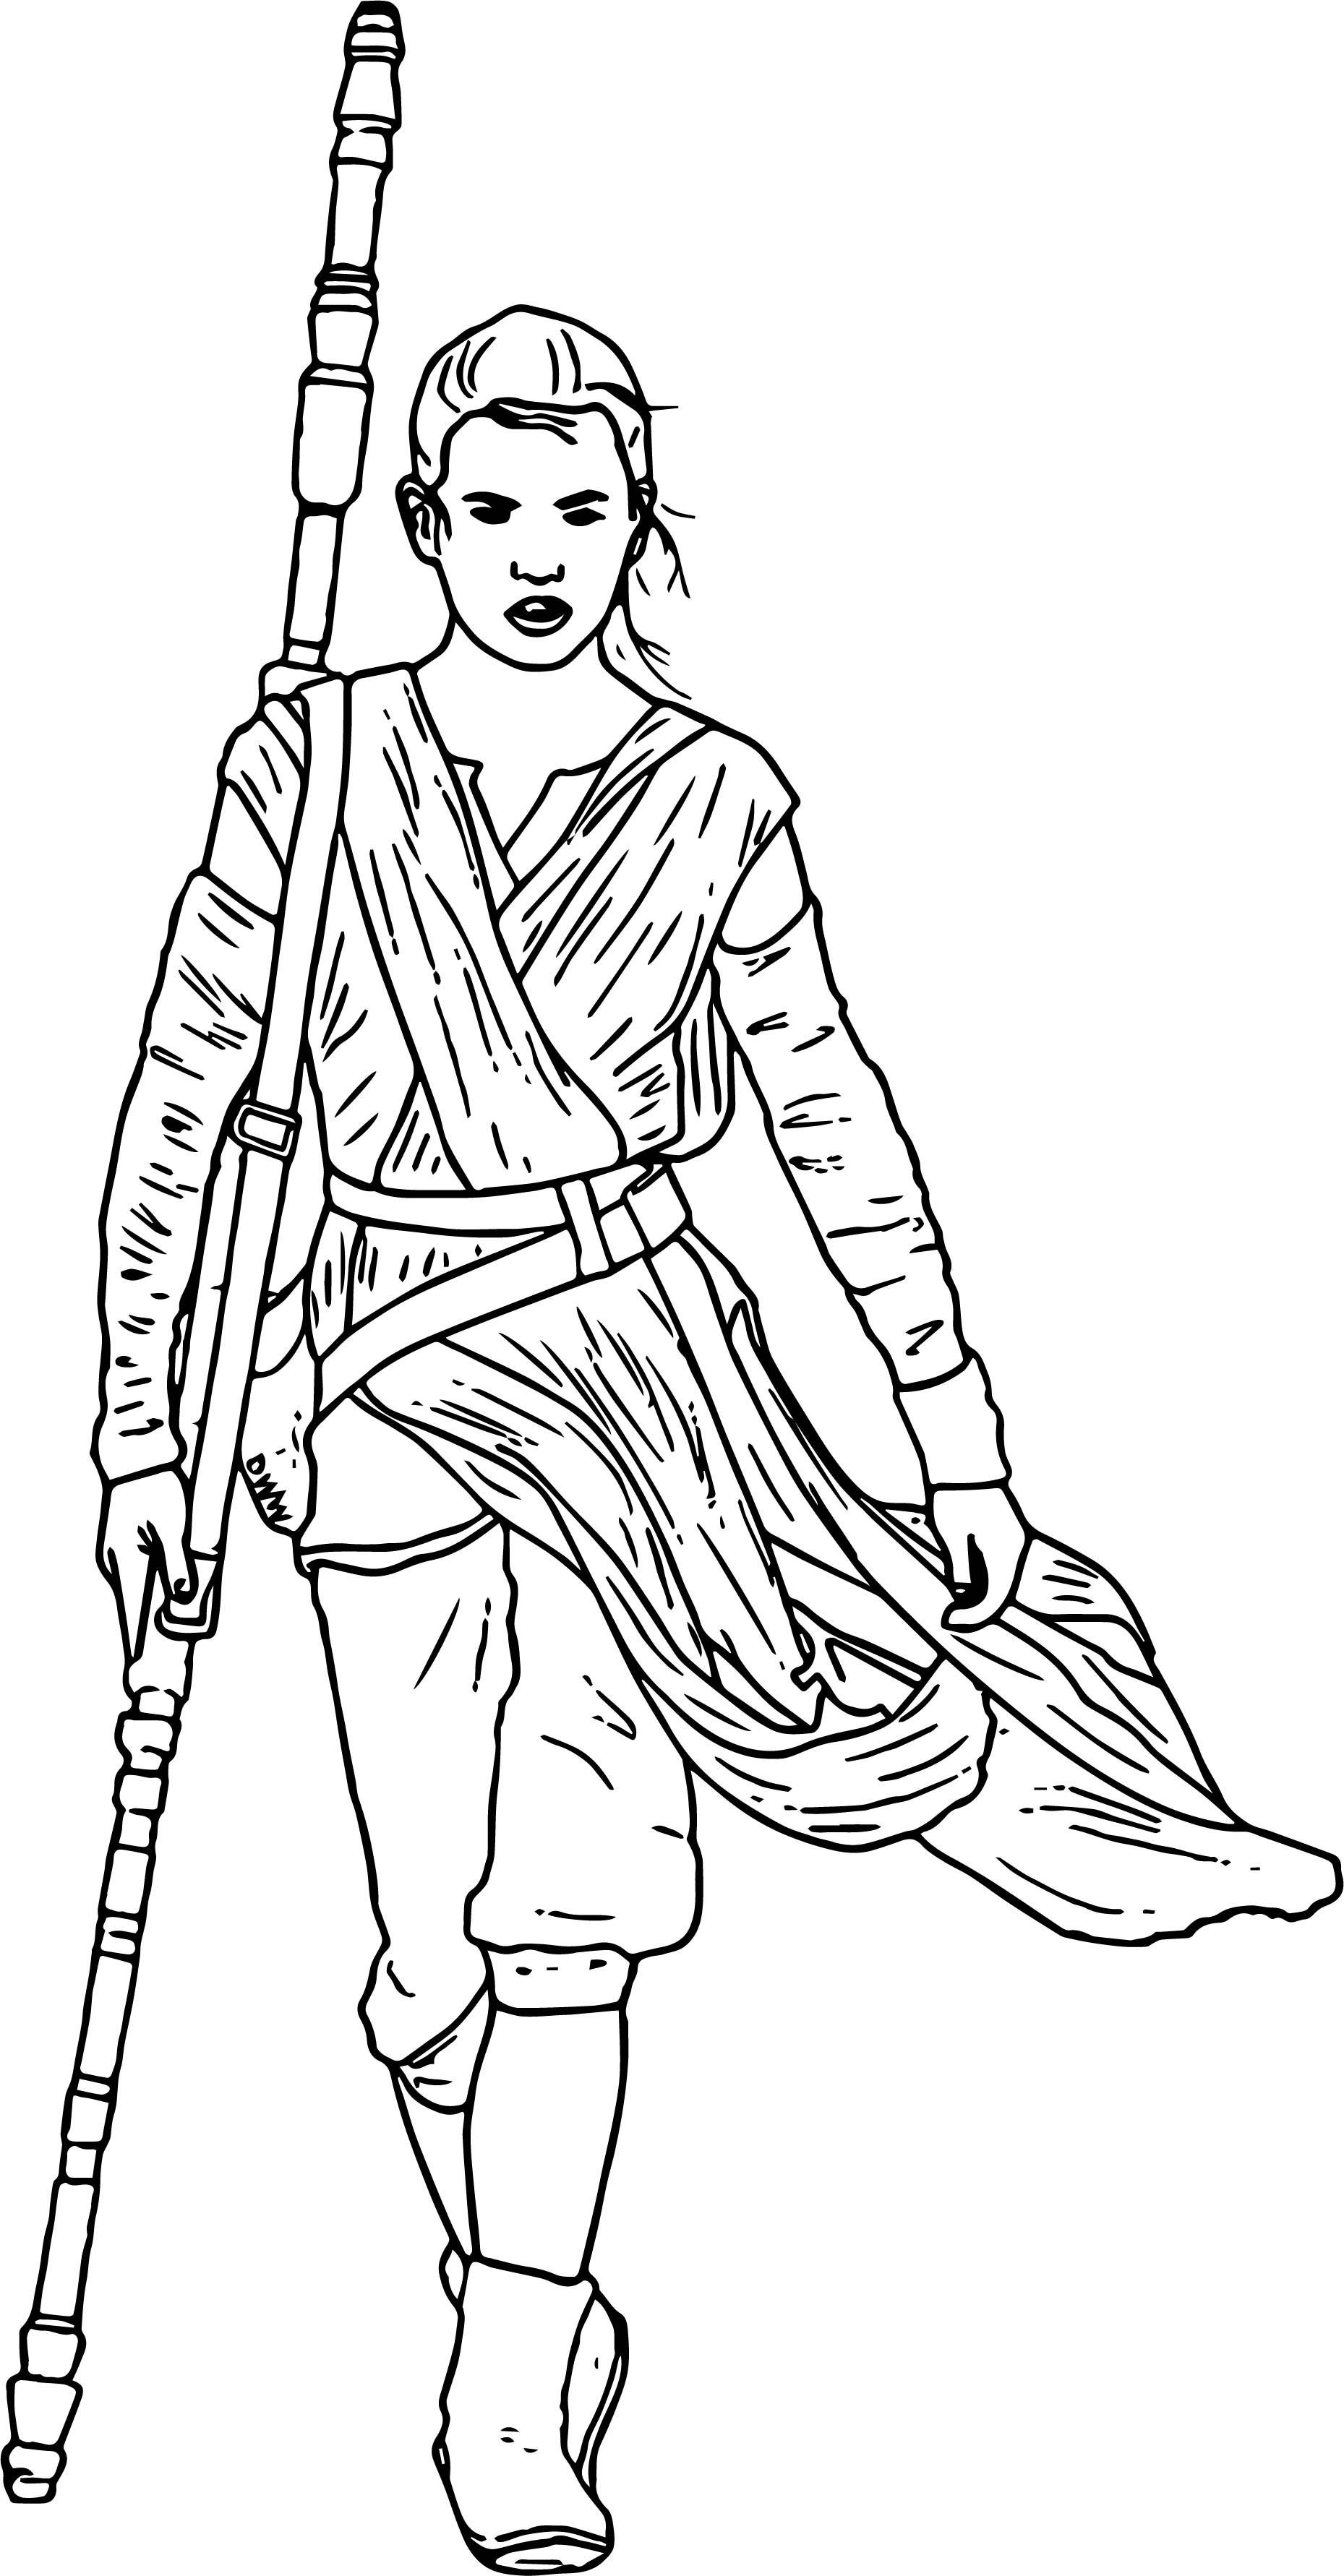 Star Wars Coloring Sheets Rey Fresh Jovie Download Of Polkadots On Parade Star Wars the force Awakens Coloring Pages Collection